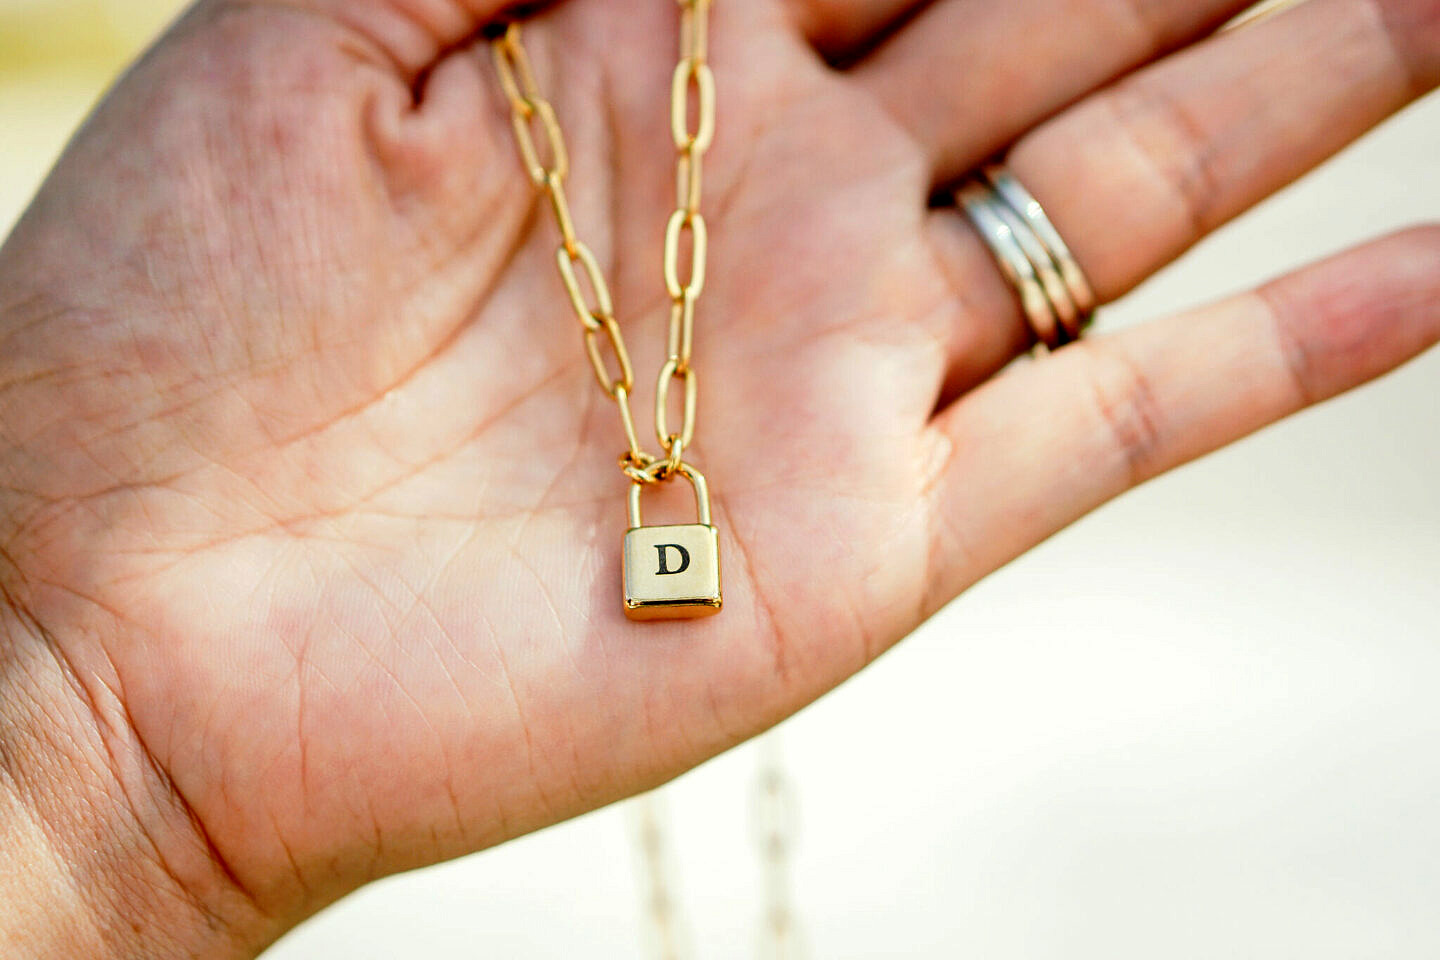 oNecklace Personalized Jewelry Lock Charm Necklace